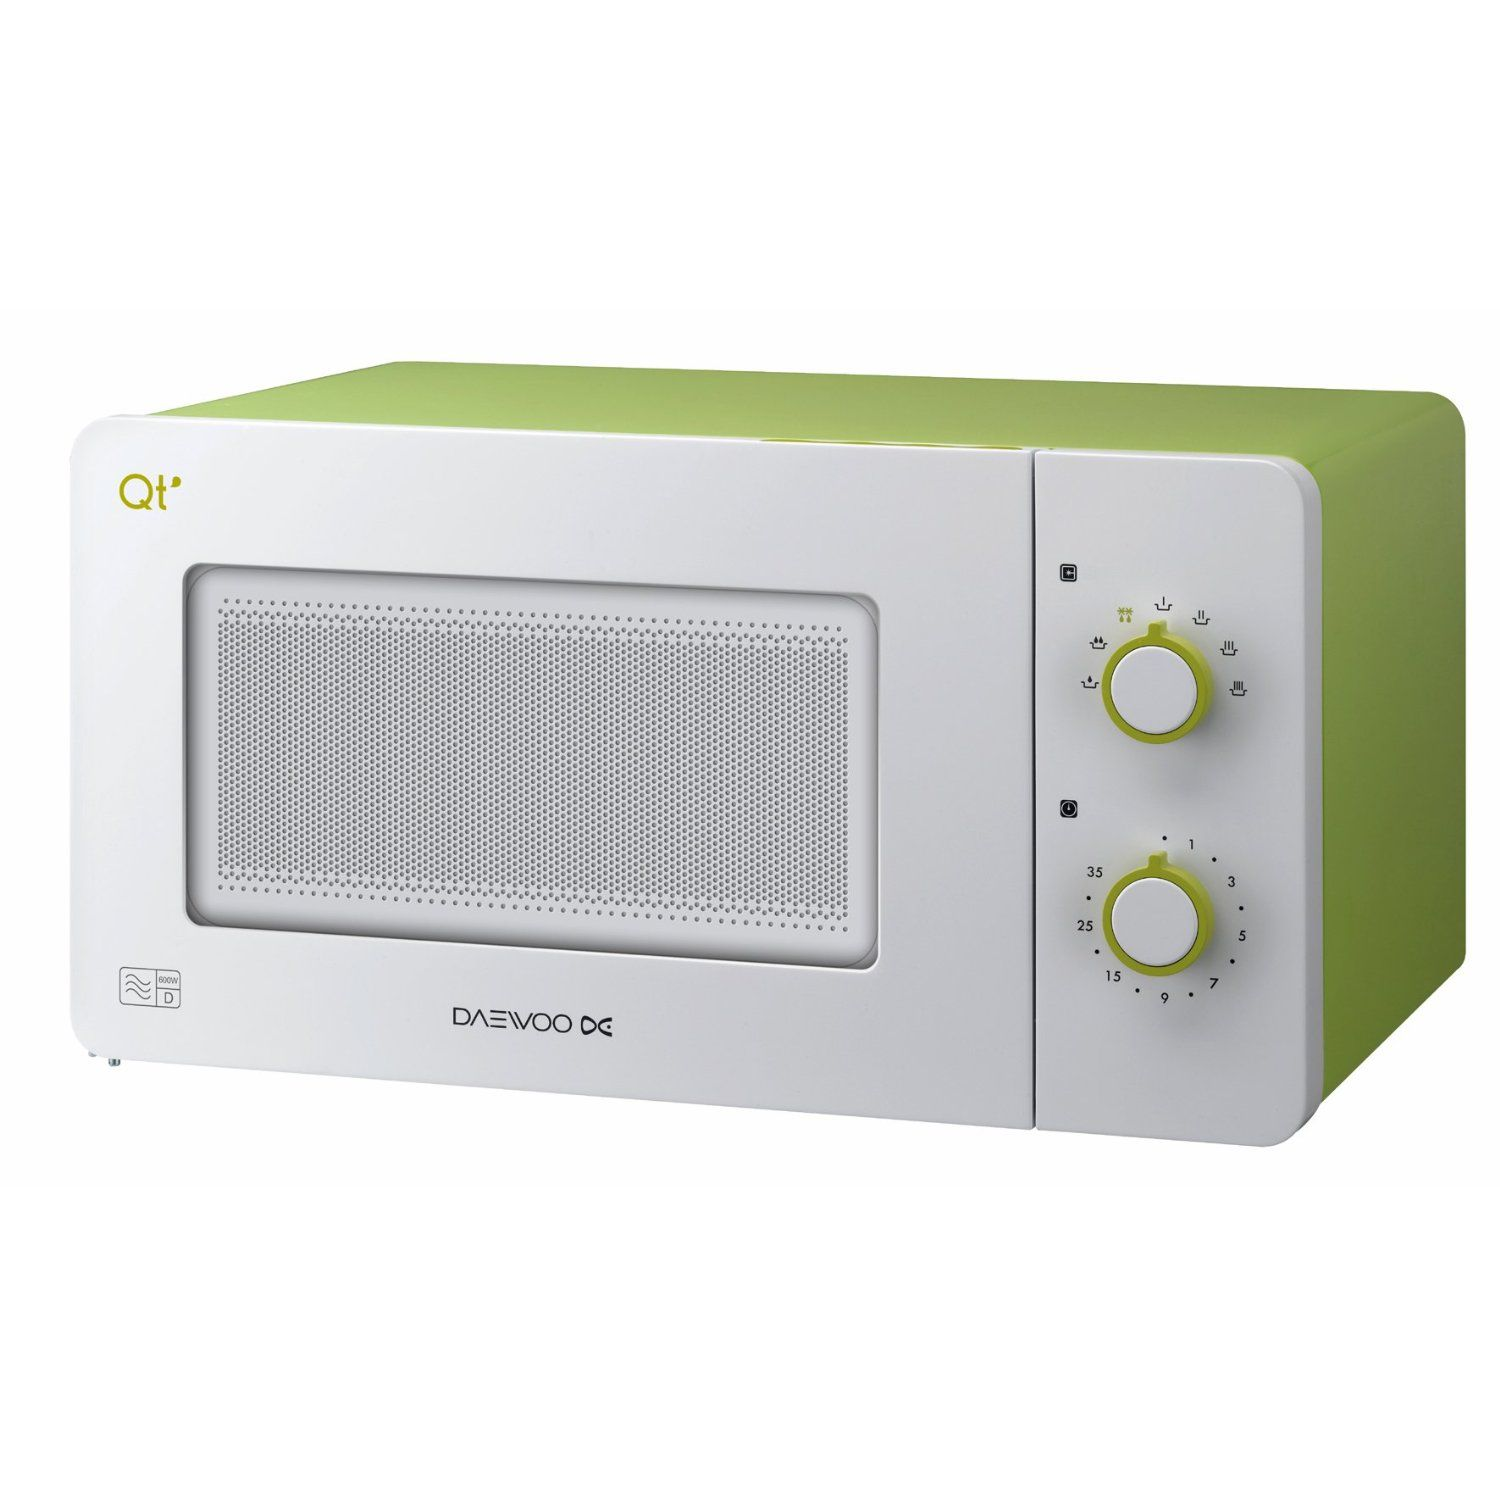 Daewoo Ultra Compact Qt1 Microwave Oven For Caravanotorhomes